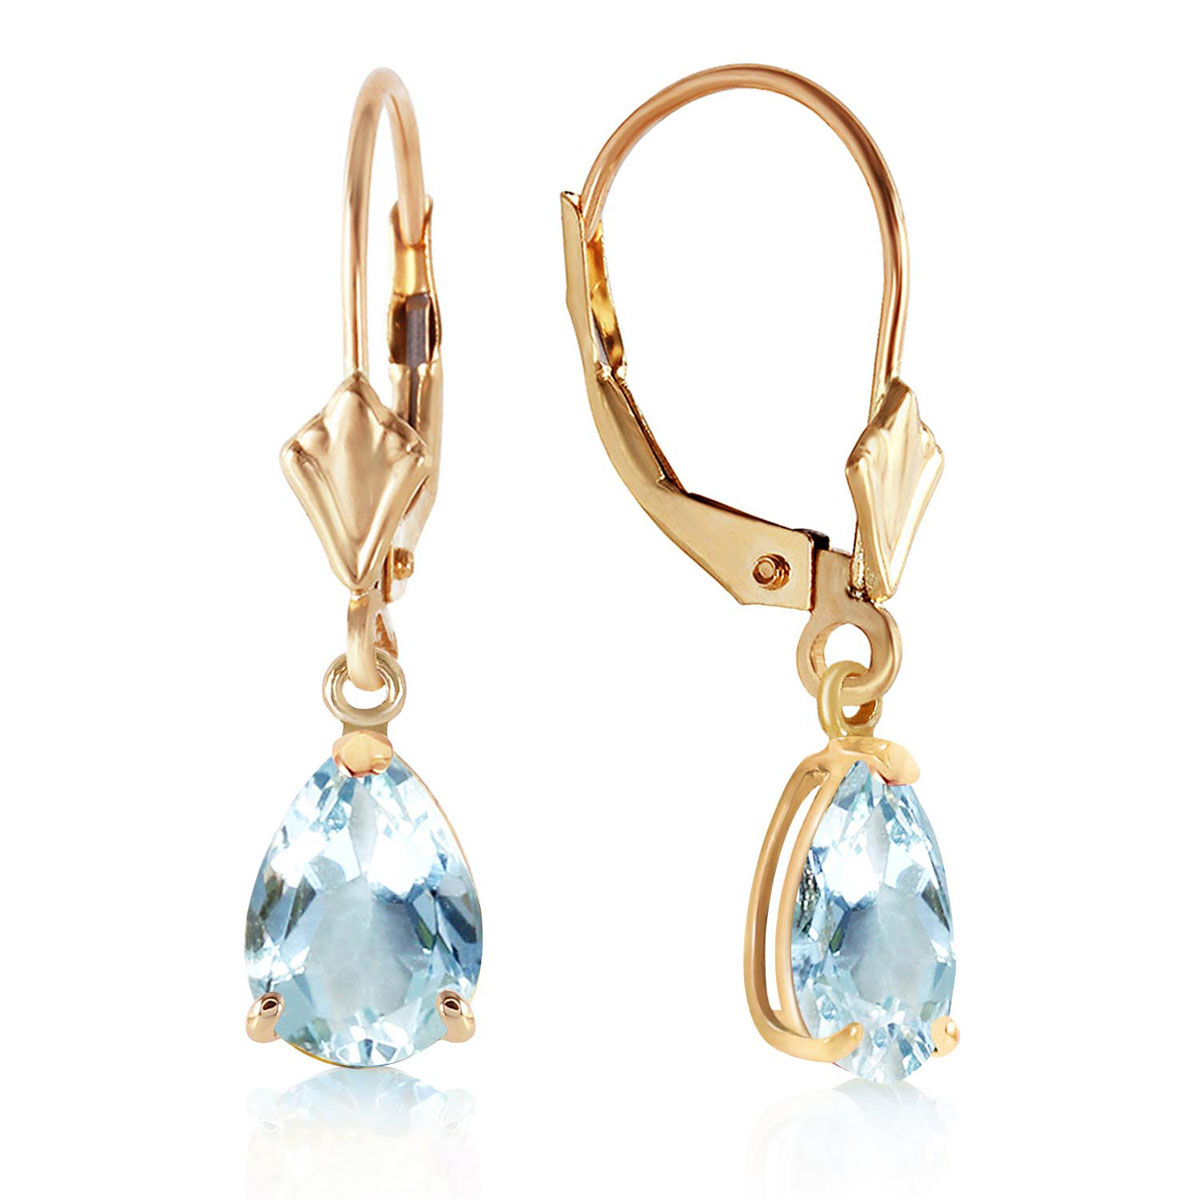 Aquamarine Belle Drop Earrings 2.85 ctw in 9ct Gold